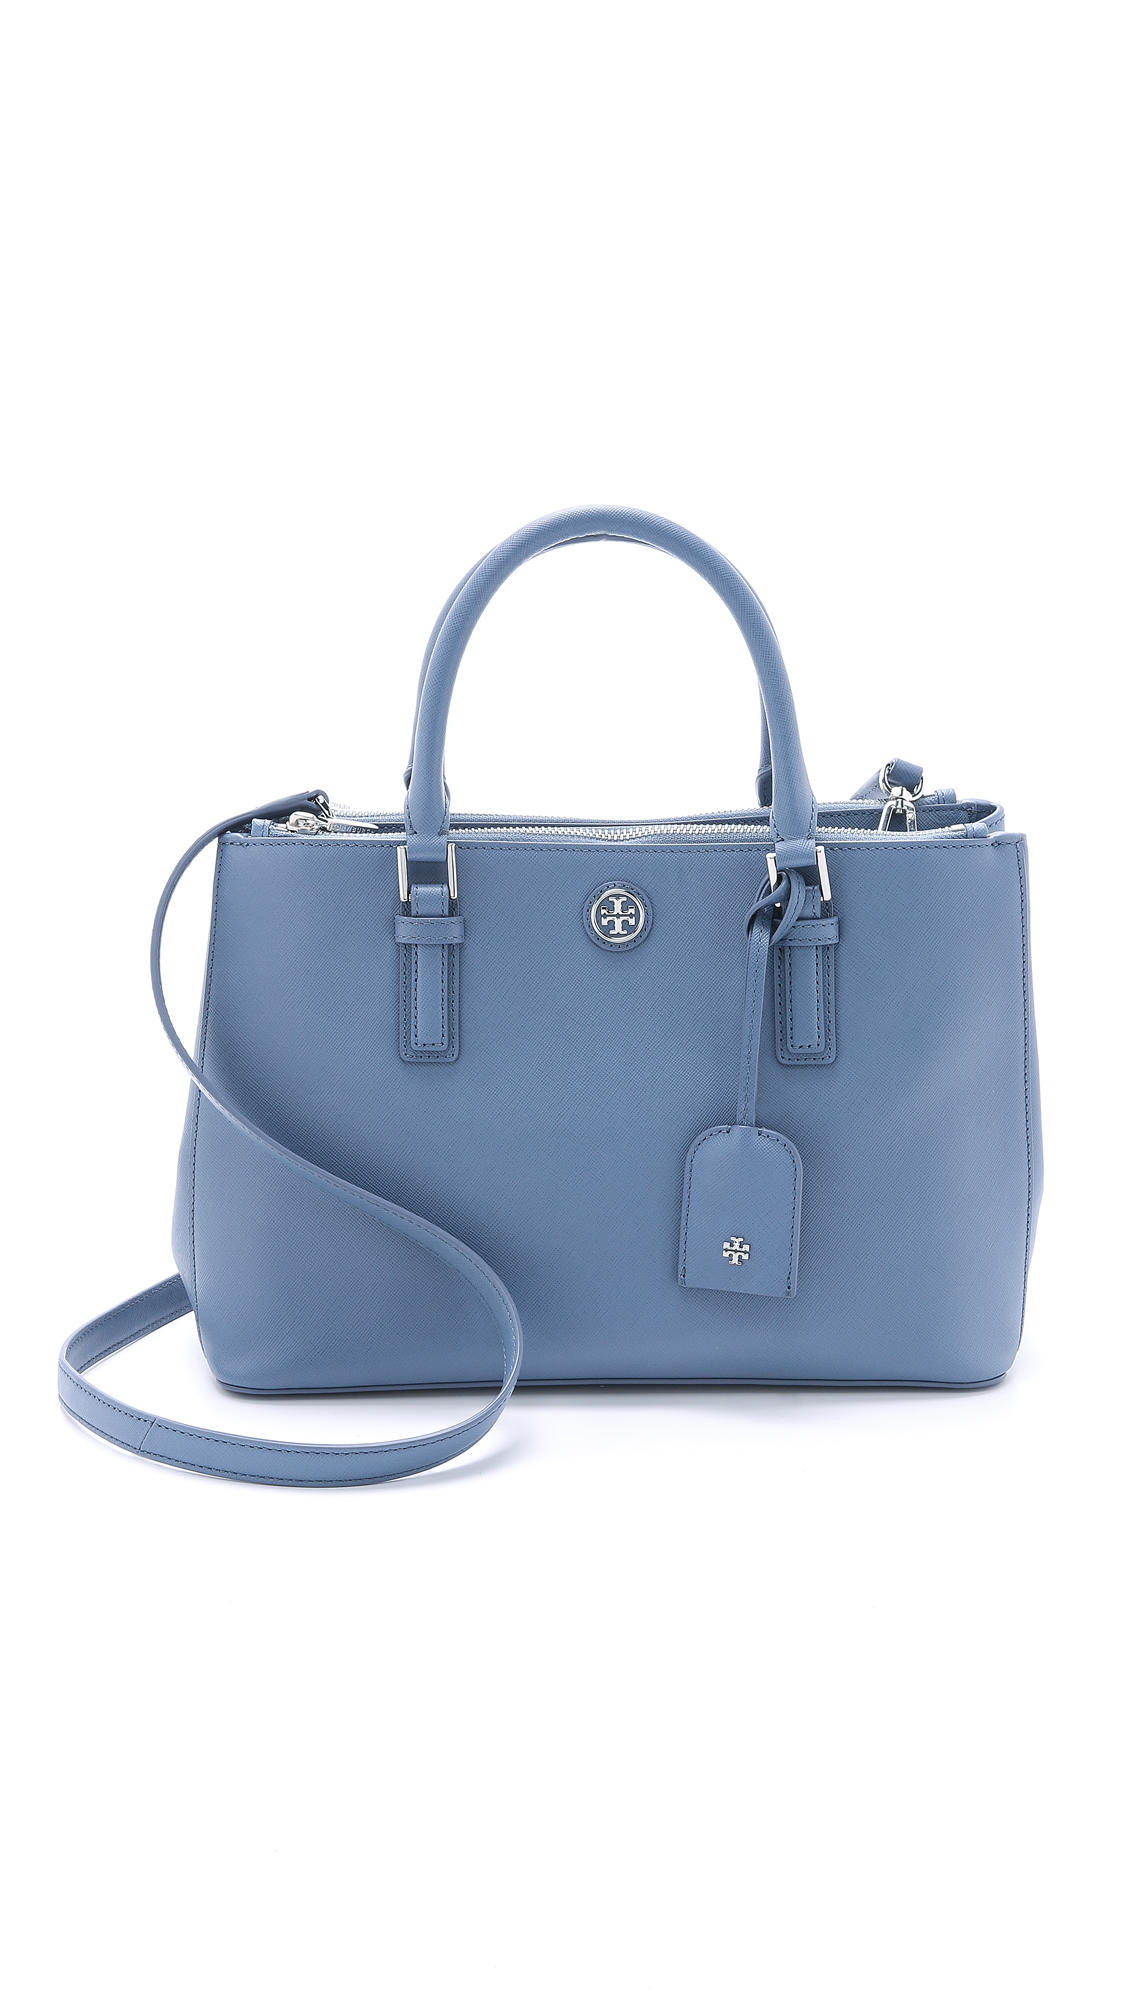 9f80169a1d6 Tory Burch Robinson Mini Double Zip Satchel in Blue - Lyst